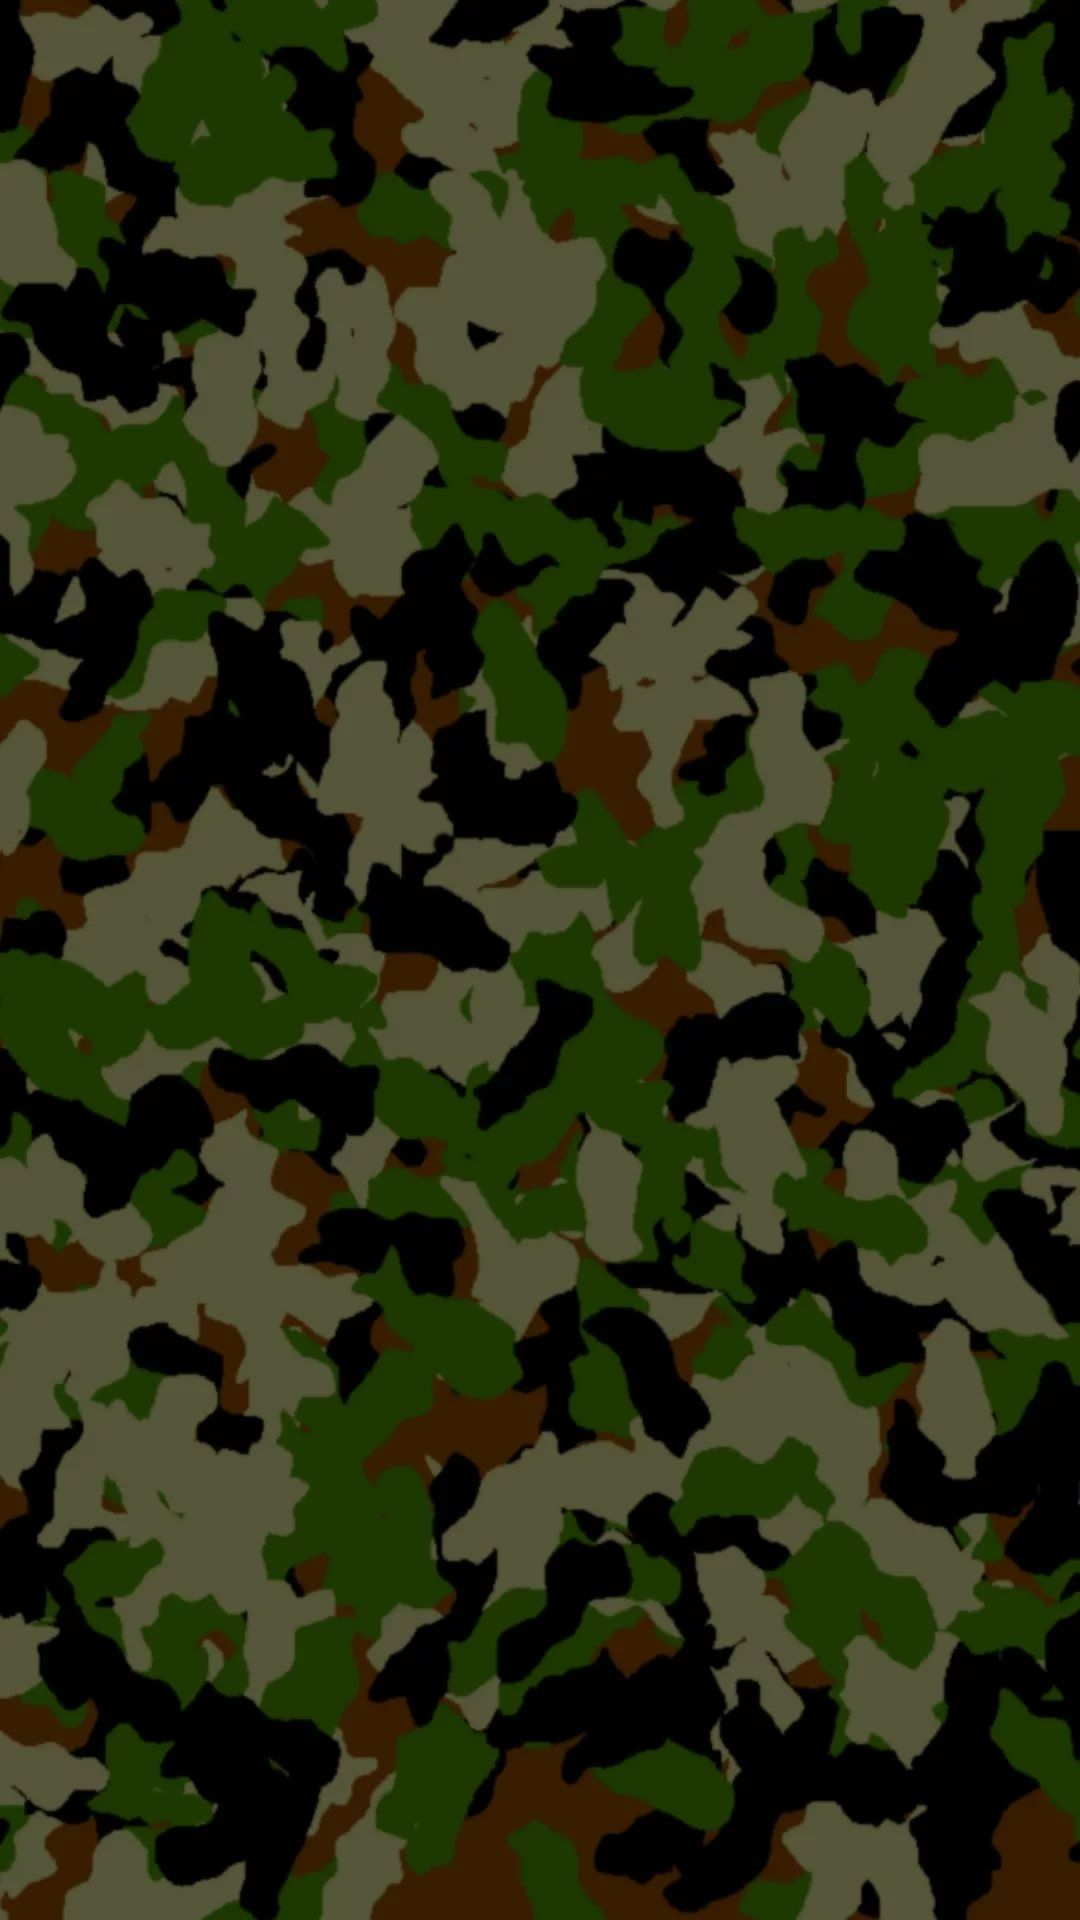 Realtree Ap wallpaper for android